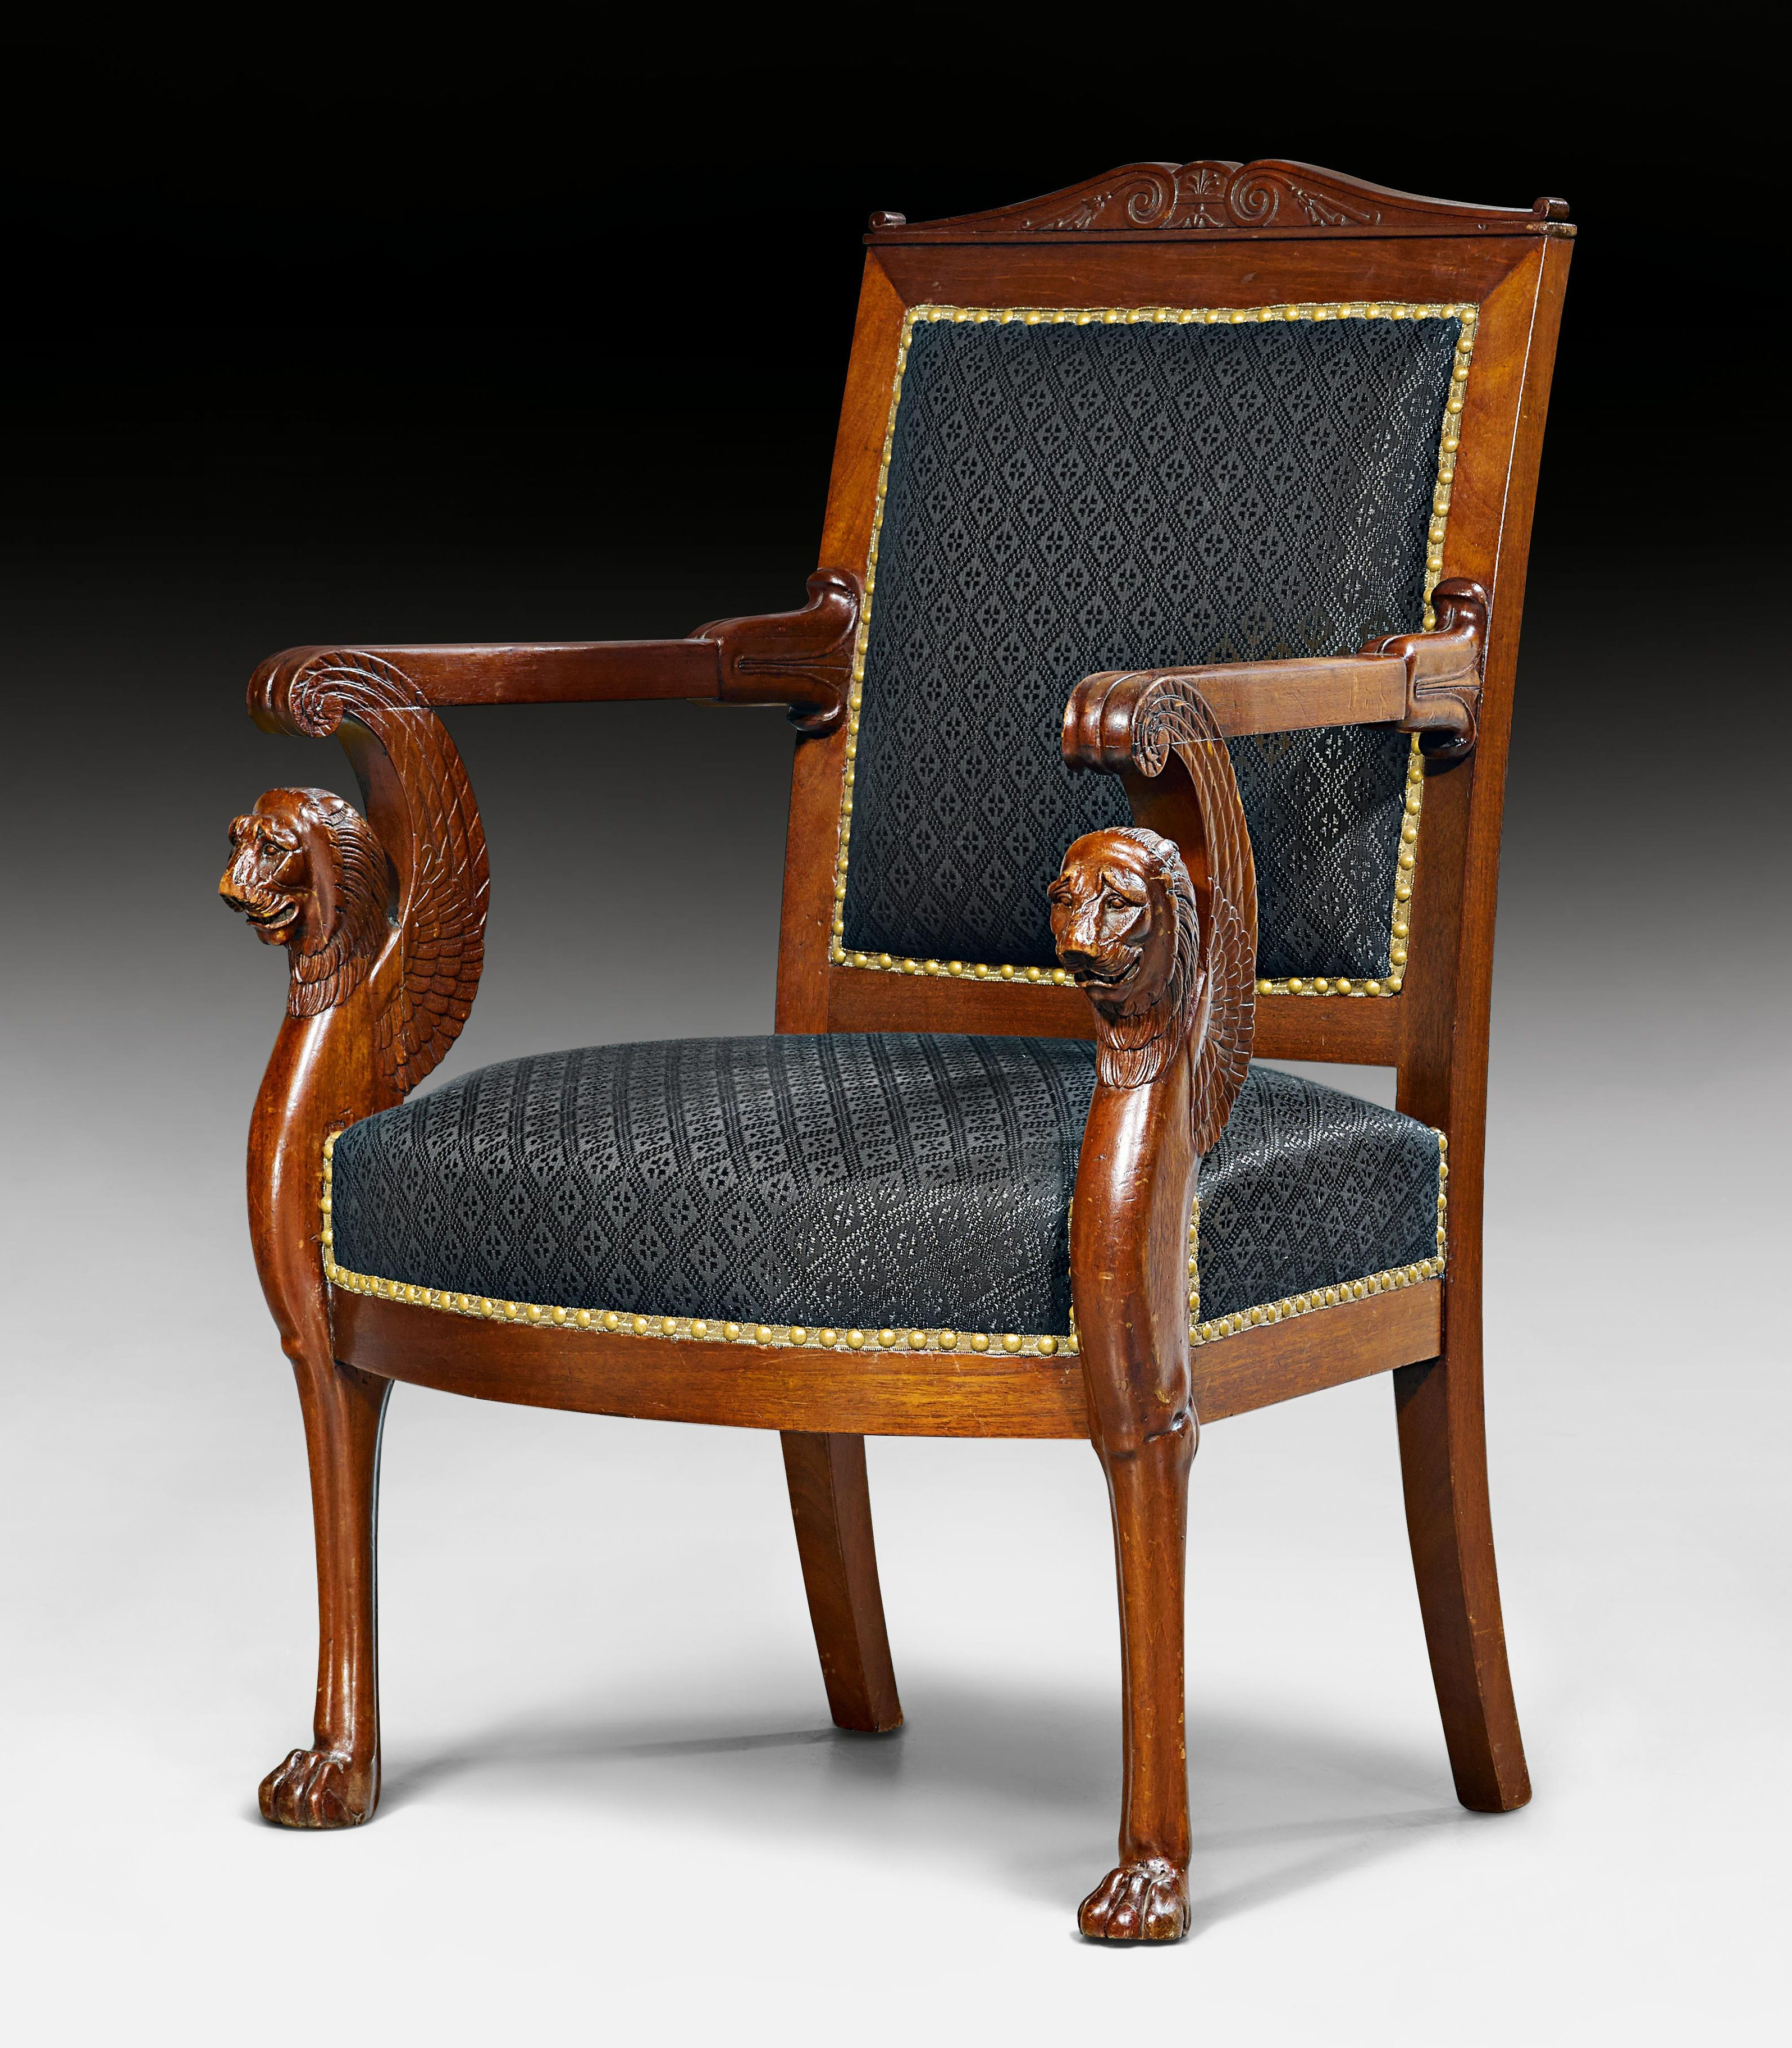 C1805 Fauteuil Aux Lions Ailees French Directory Empire By G Jacob Georges Jacob Maitre 1 Antique Chairs Small Chair For Bedroom Neoclassical Furniture